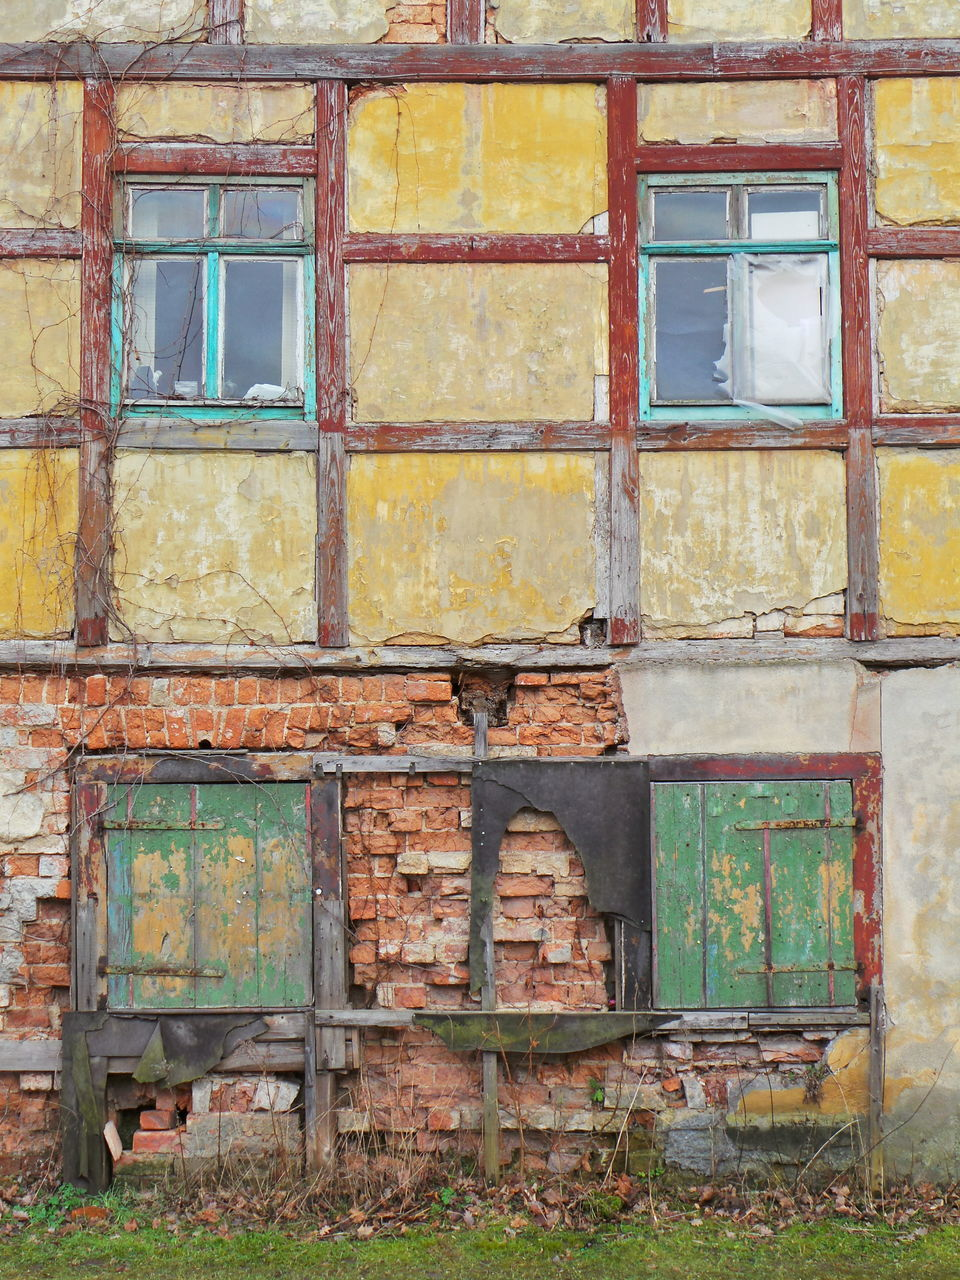 window, architecture, built structure, building exterior, weathered, full frame, day, bad condition, outdoors, damaged, obsolete, facade, no people